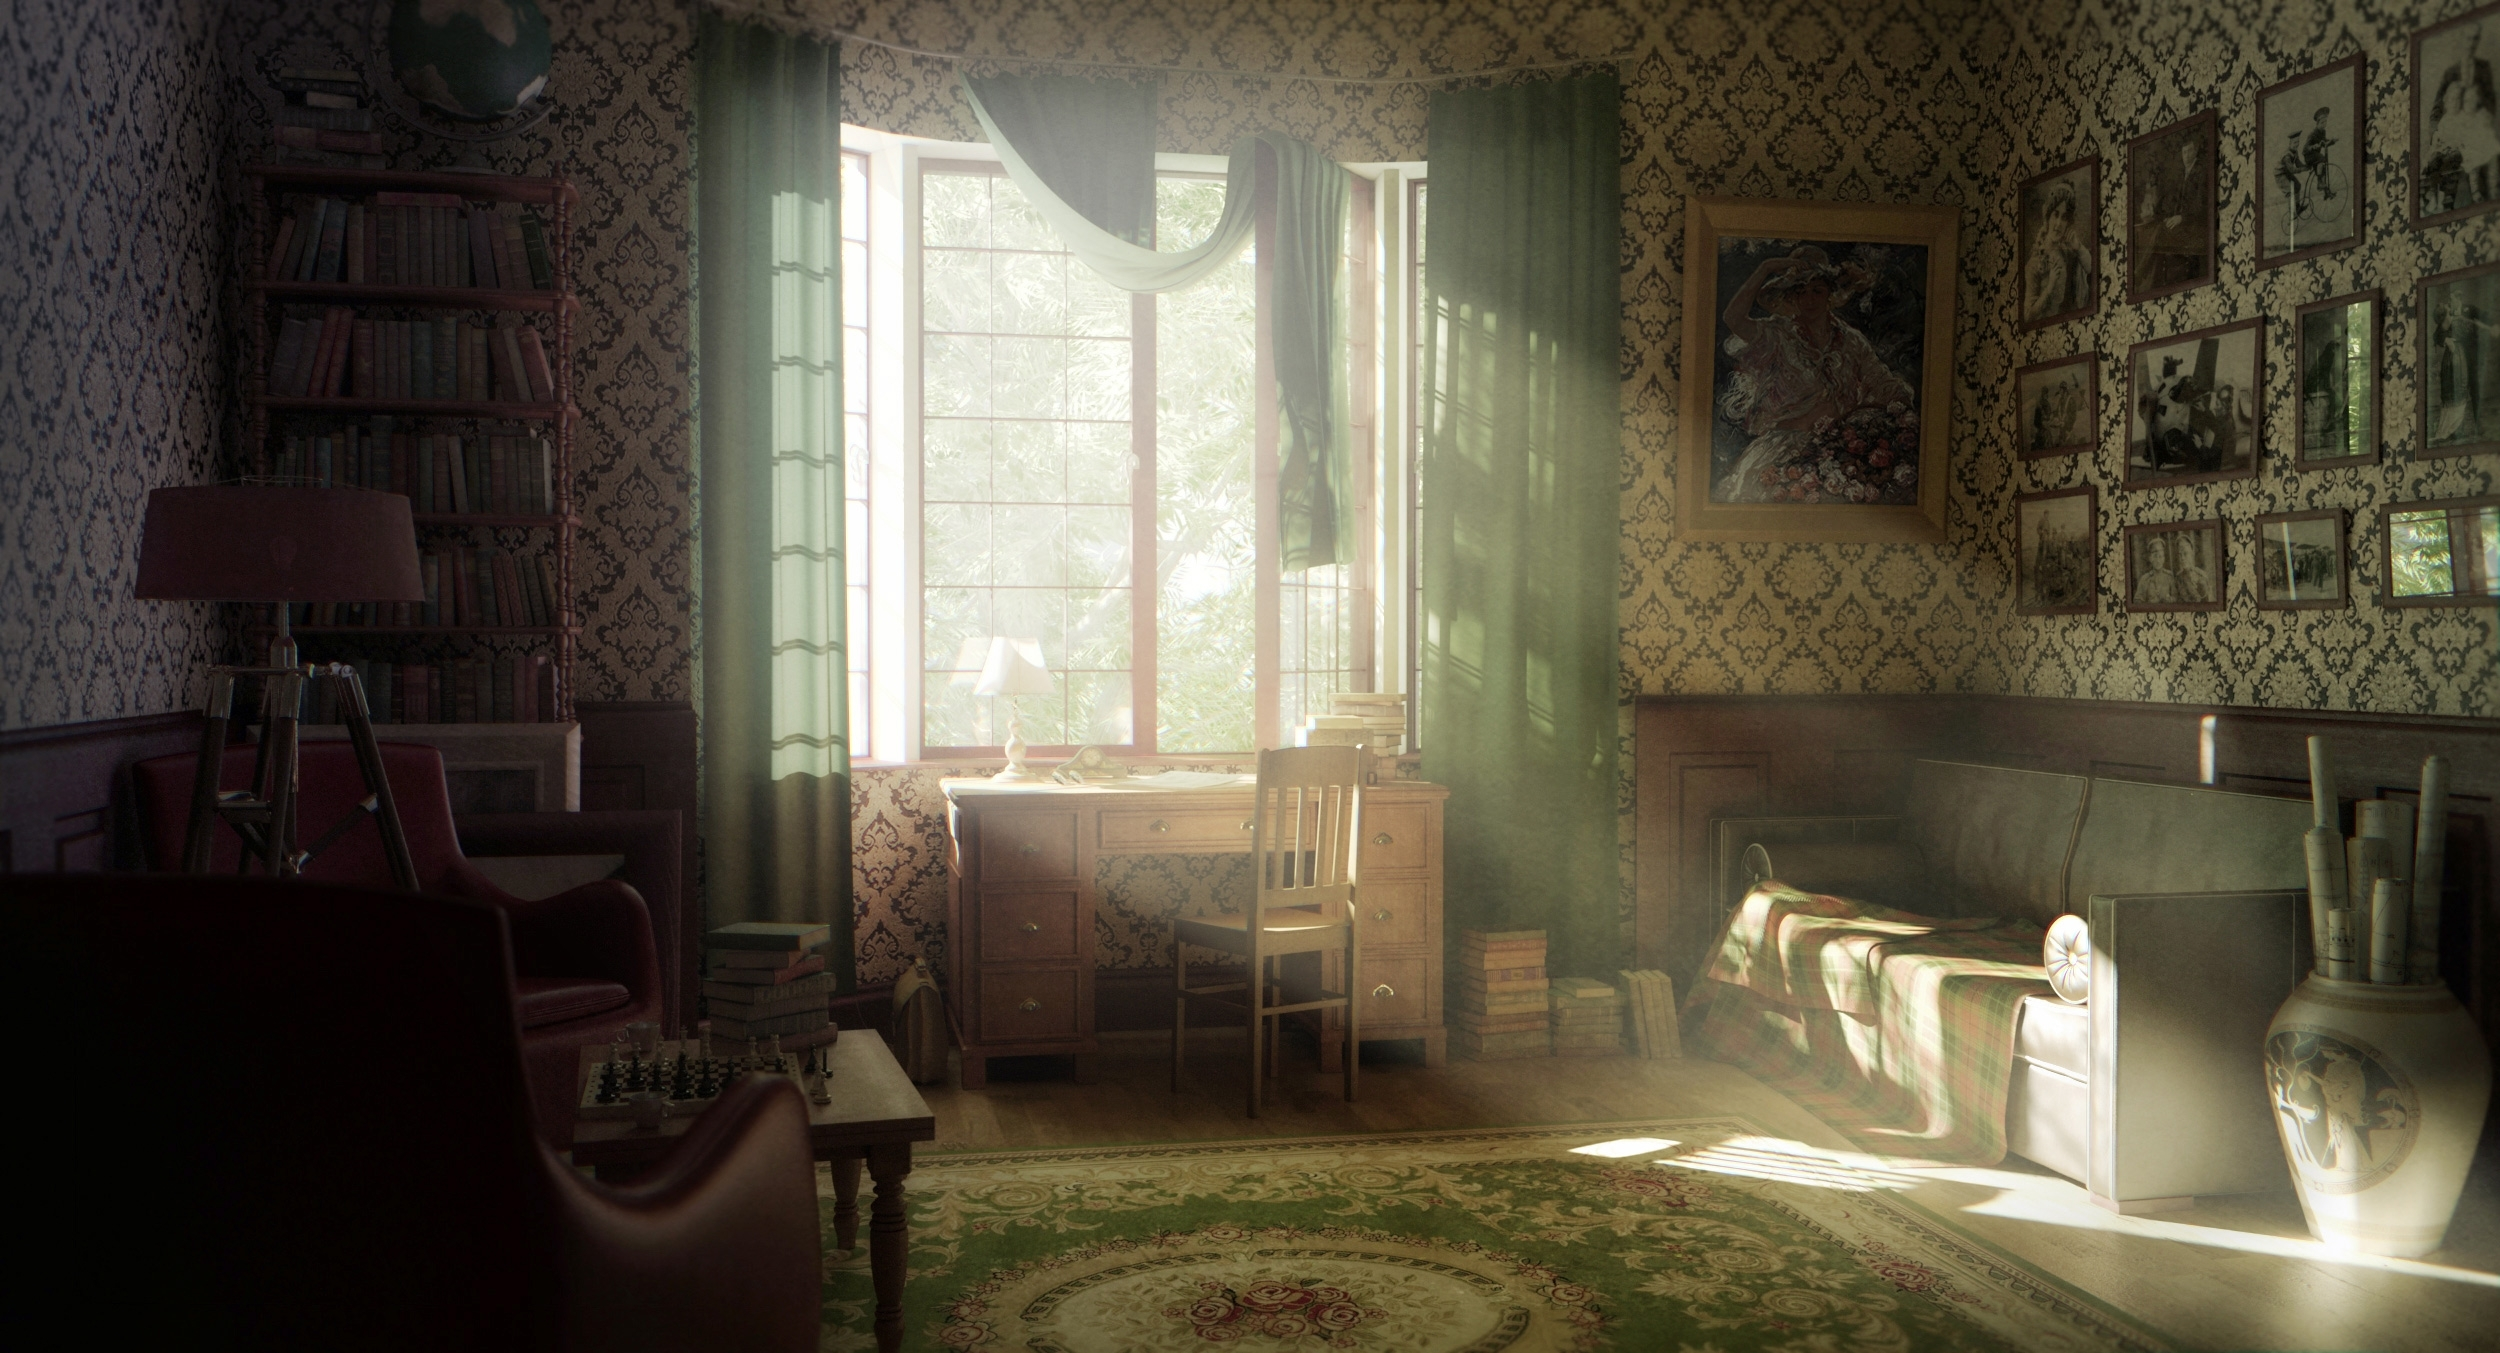 Interior Design Retro Vintage Warm Sunlight Room Wallpaper